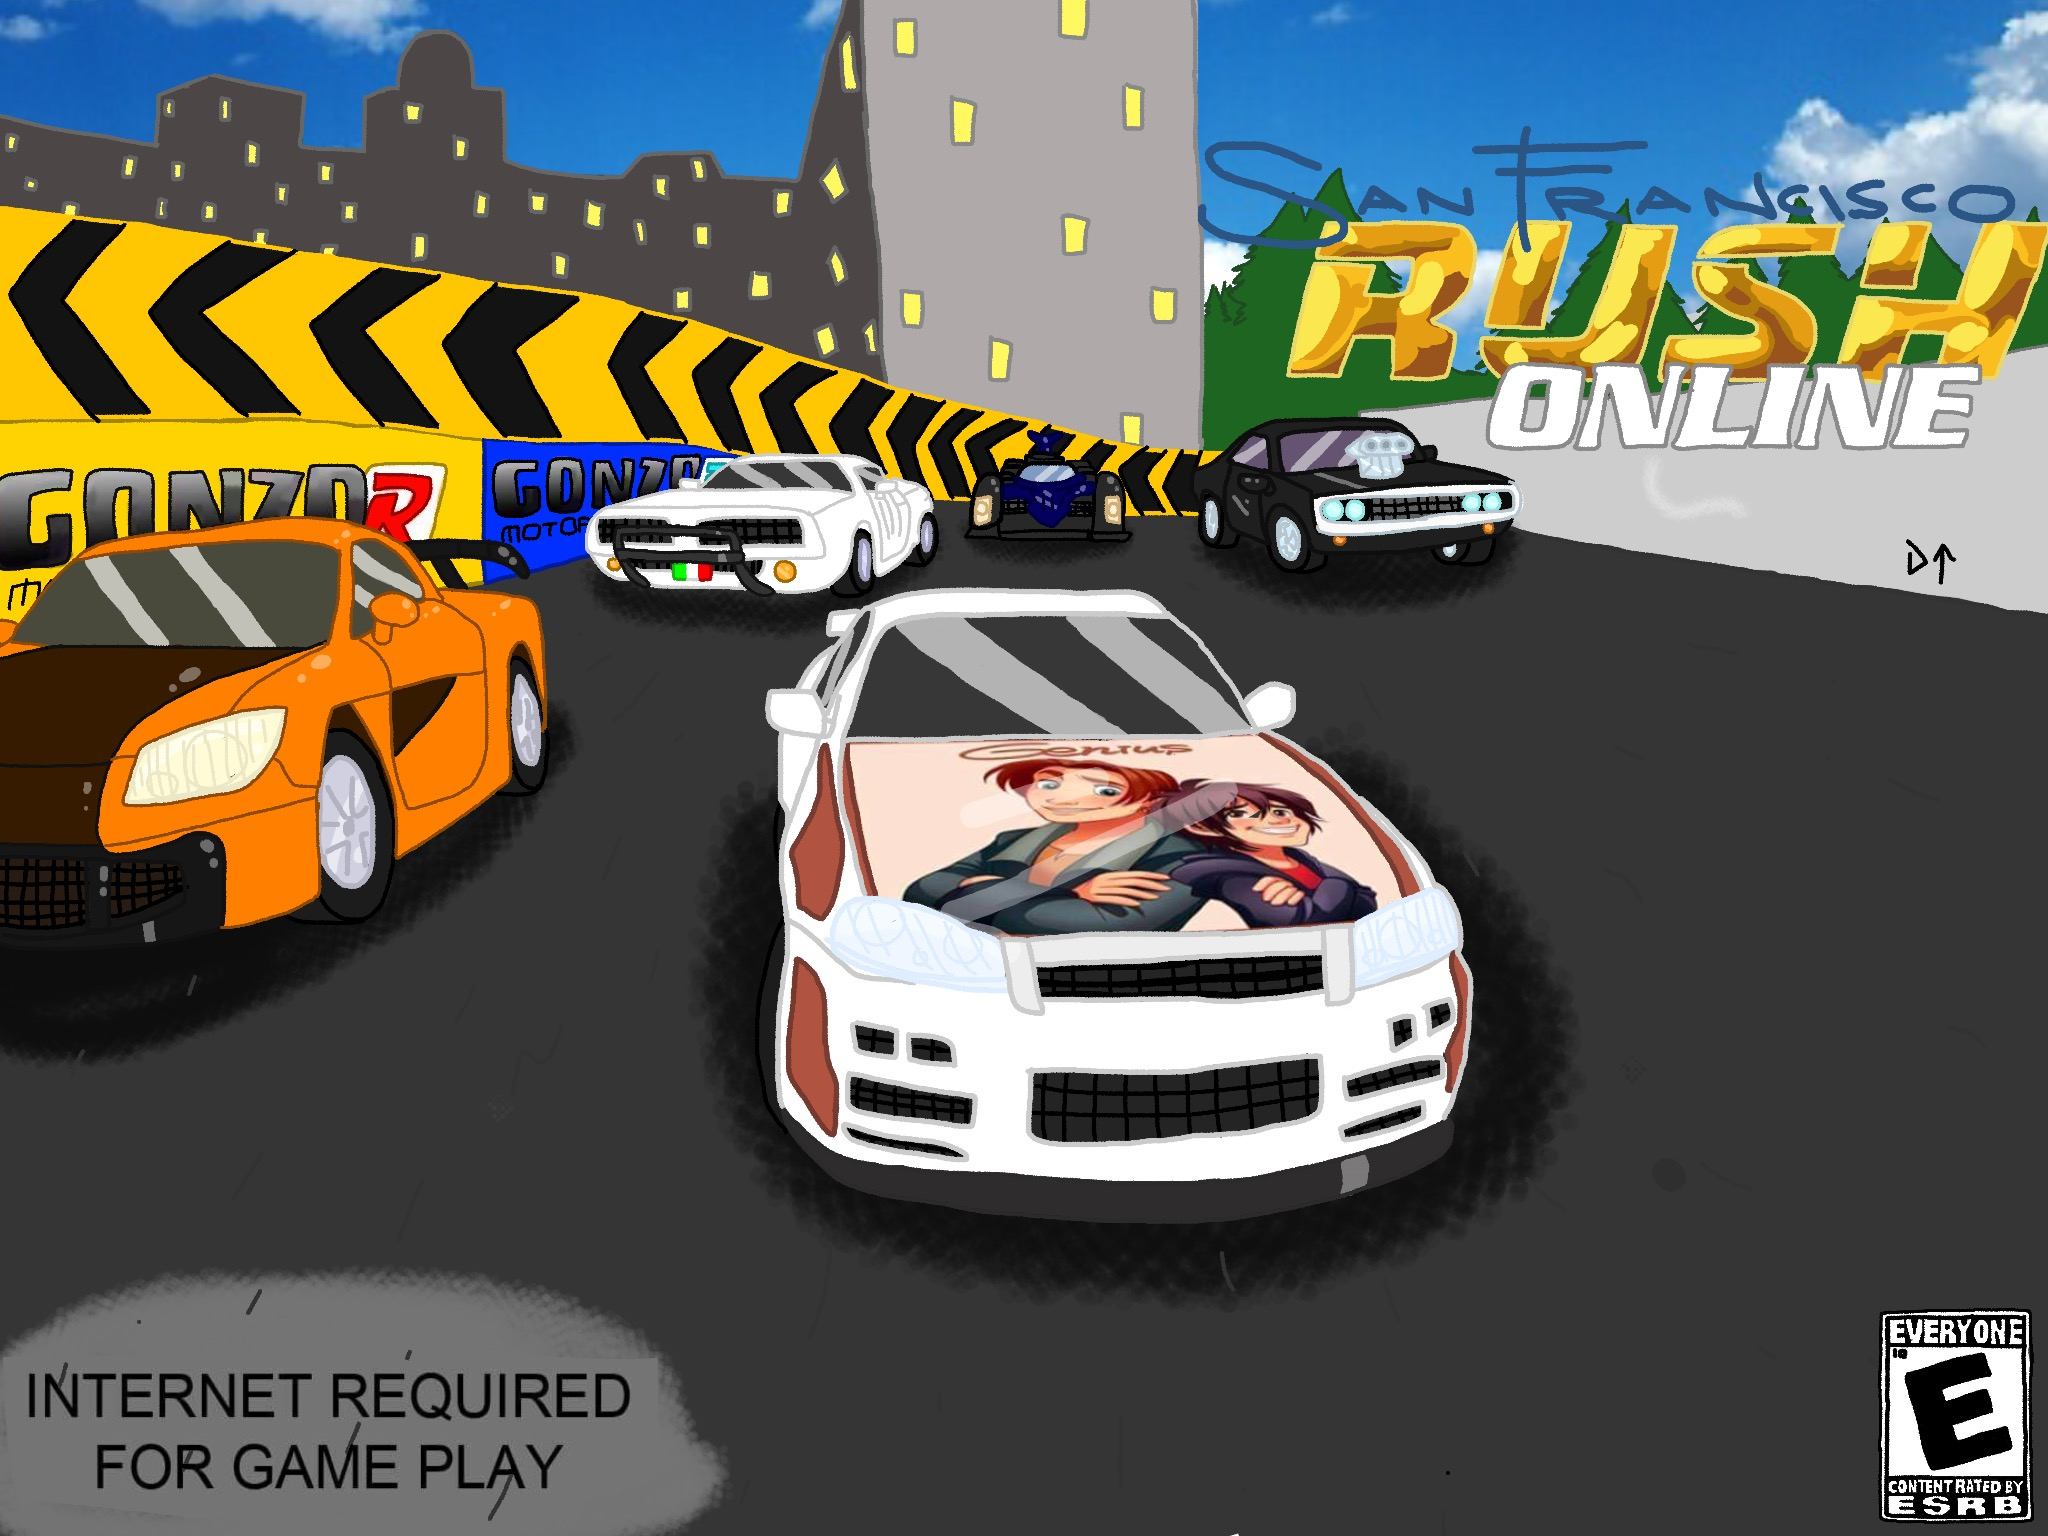 San Francisco Rush Online Drawned (Large size) by Rainbow-Dash-Rockz